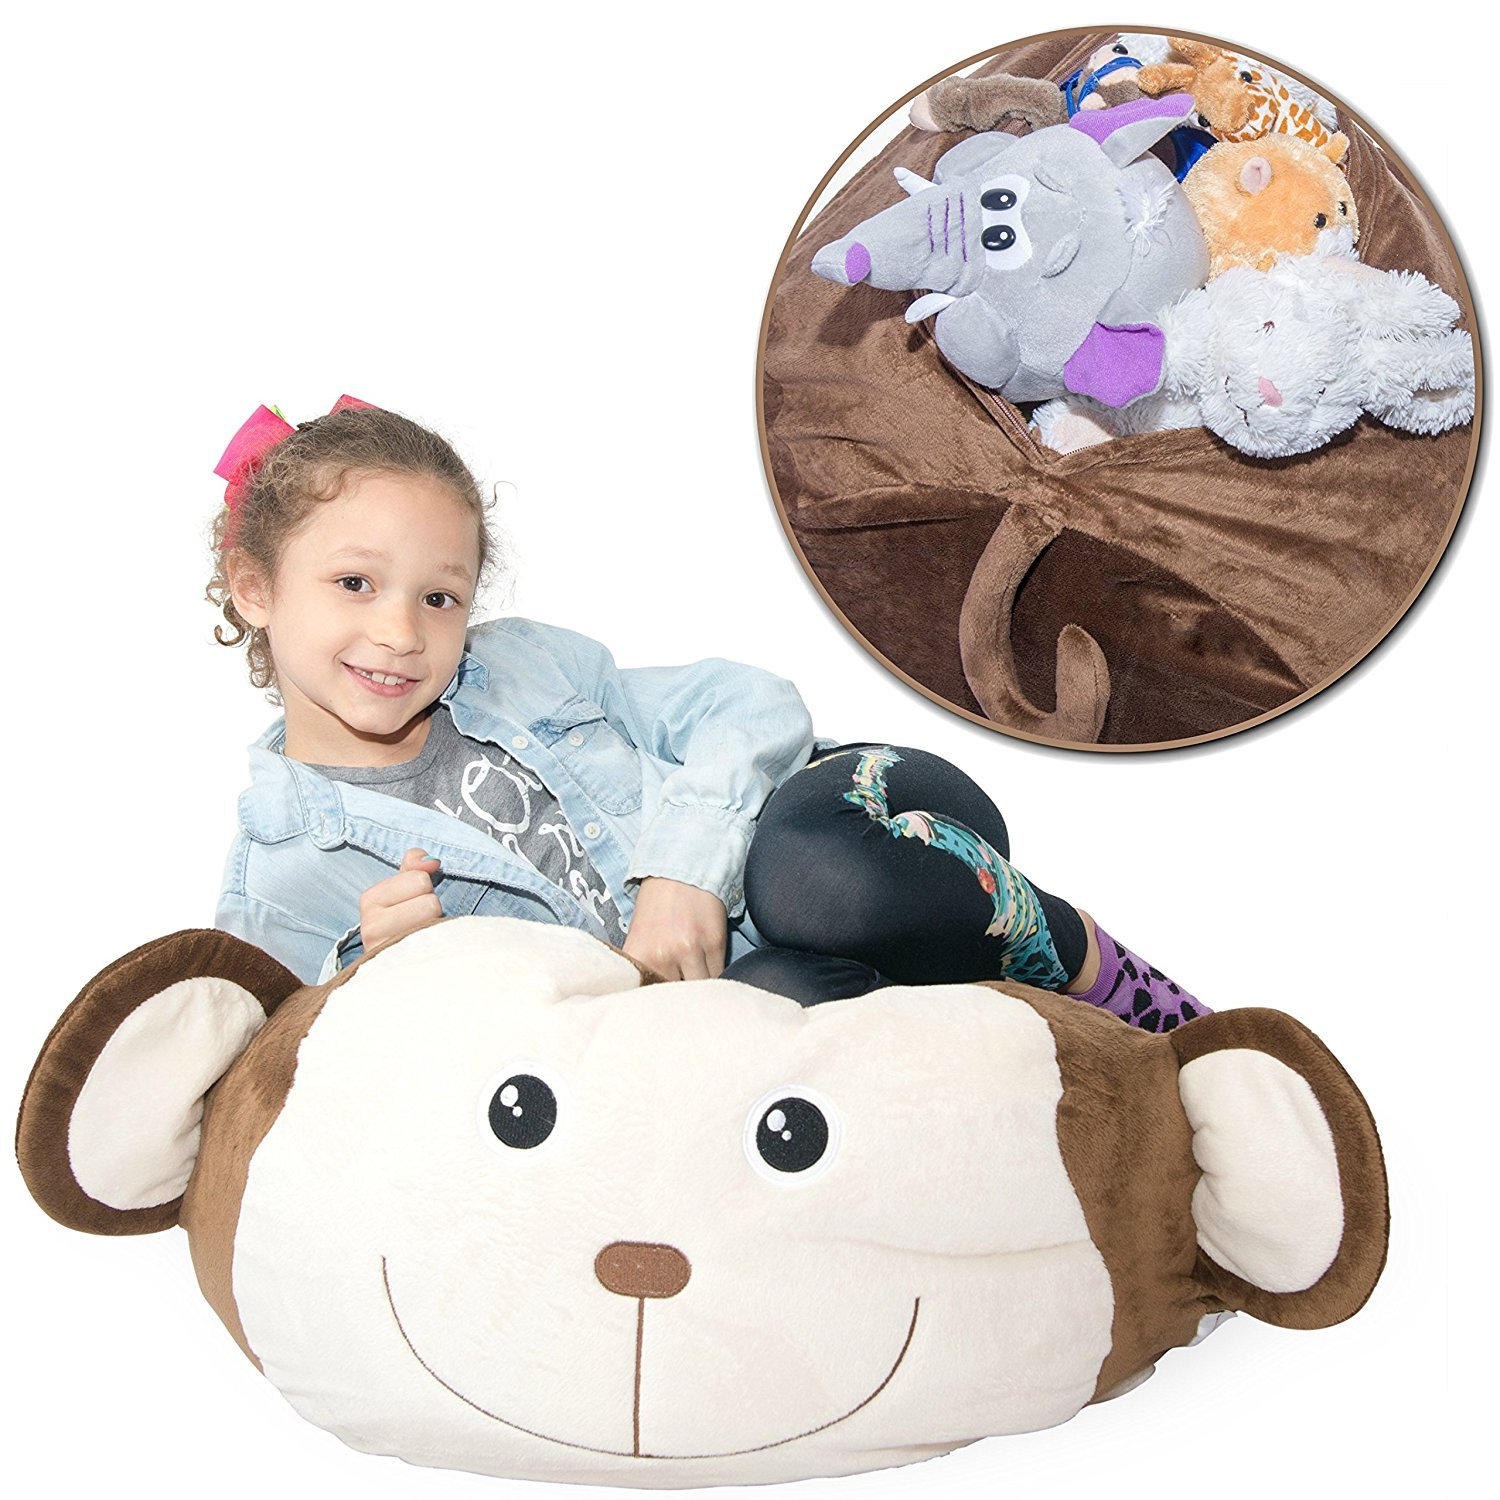 Jumbo Stuffed Animal Storage Bean Bag Chair - Super SOFT Fabric Kids Love -  3 Plush